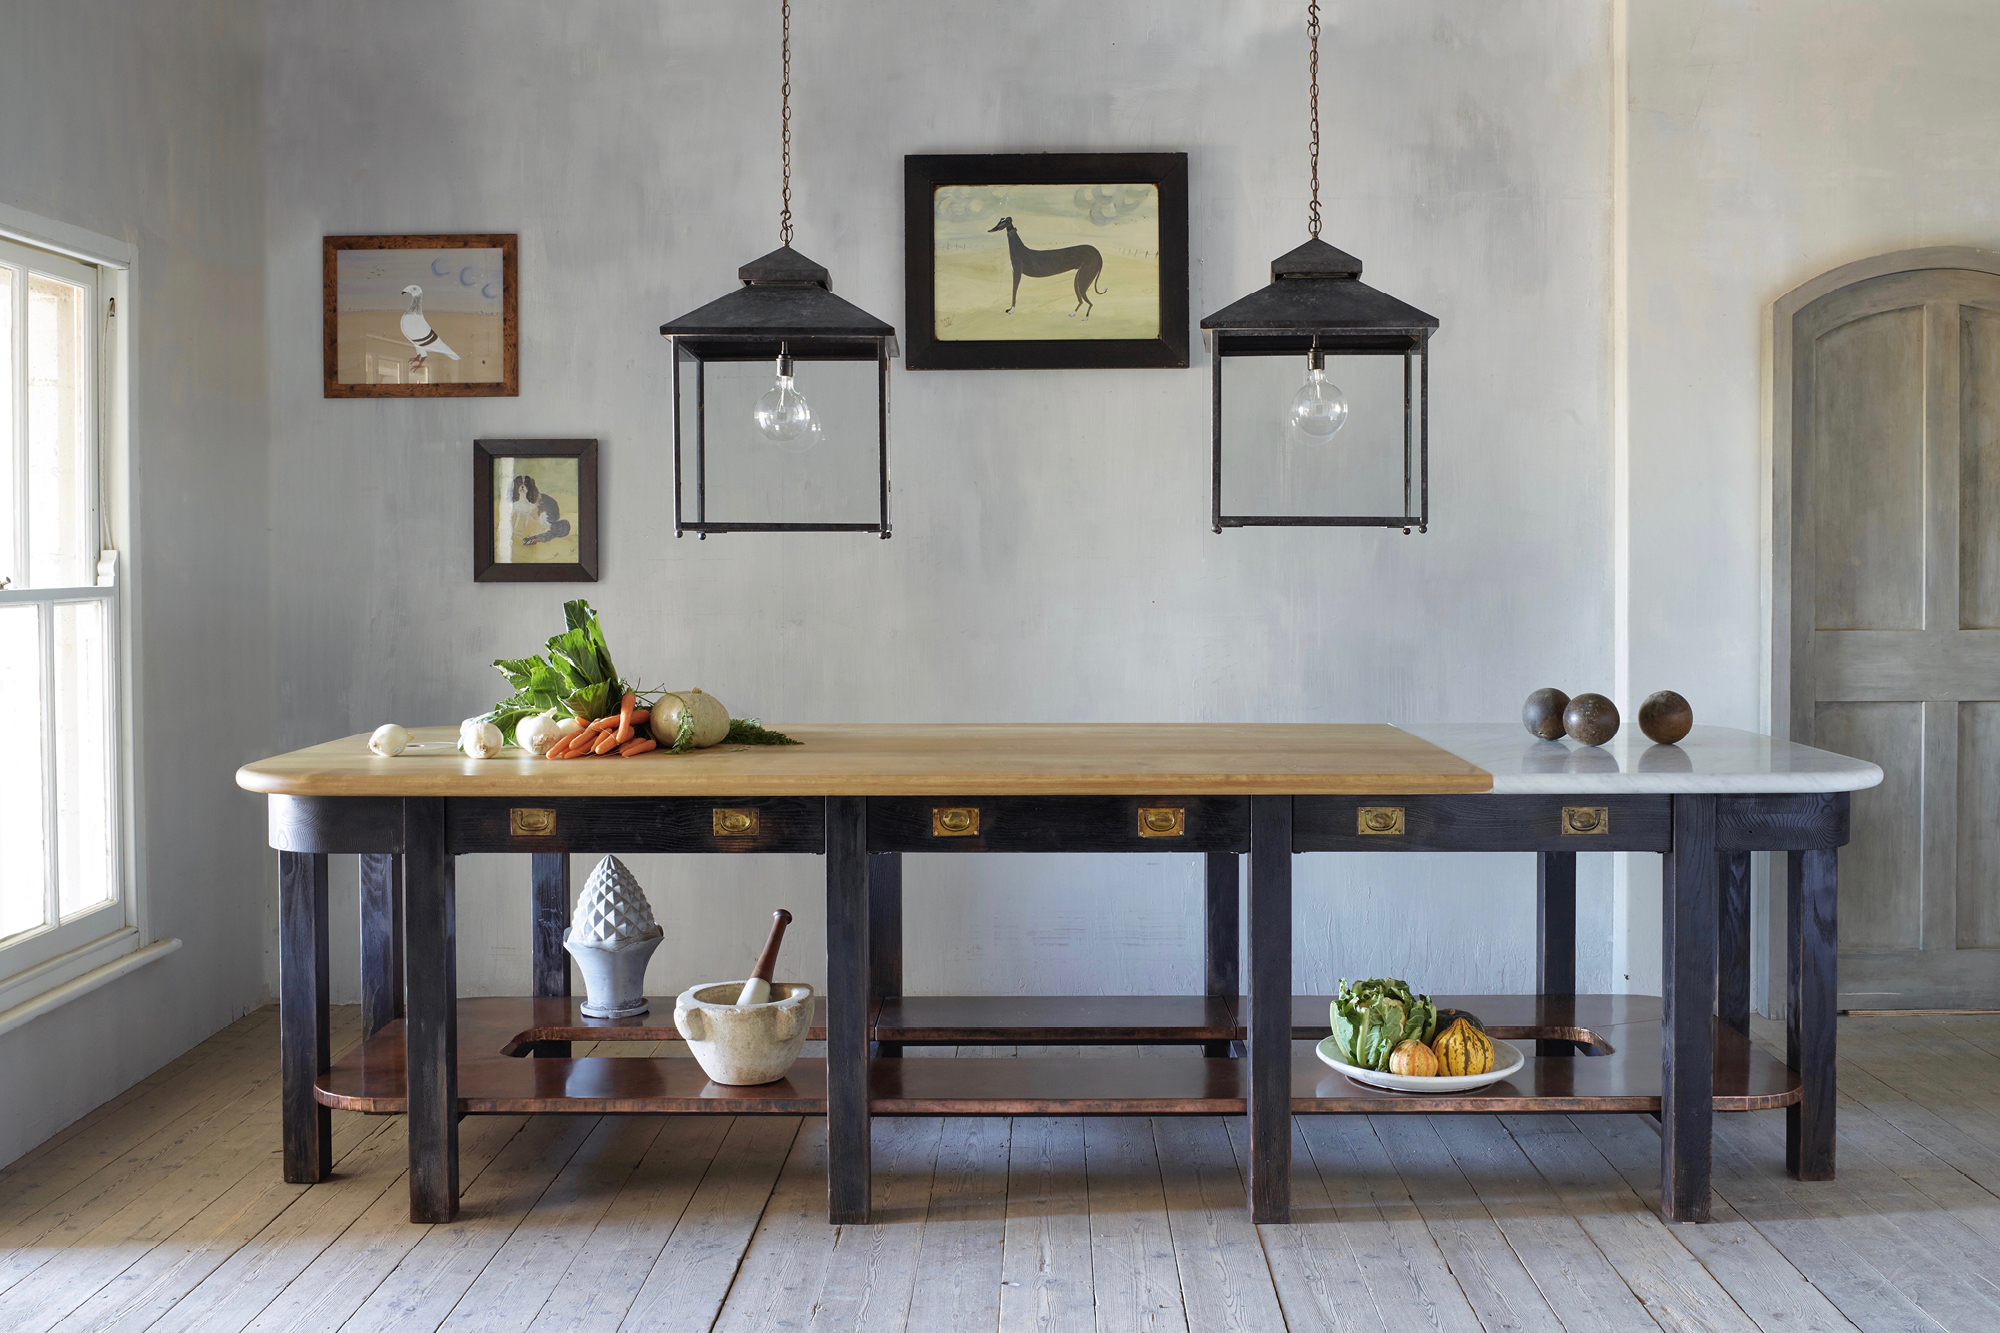 Matthew Cox designs bespoke furniture, handmade in England from natural and sustainable materials